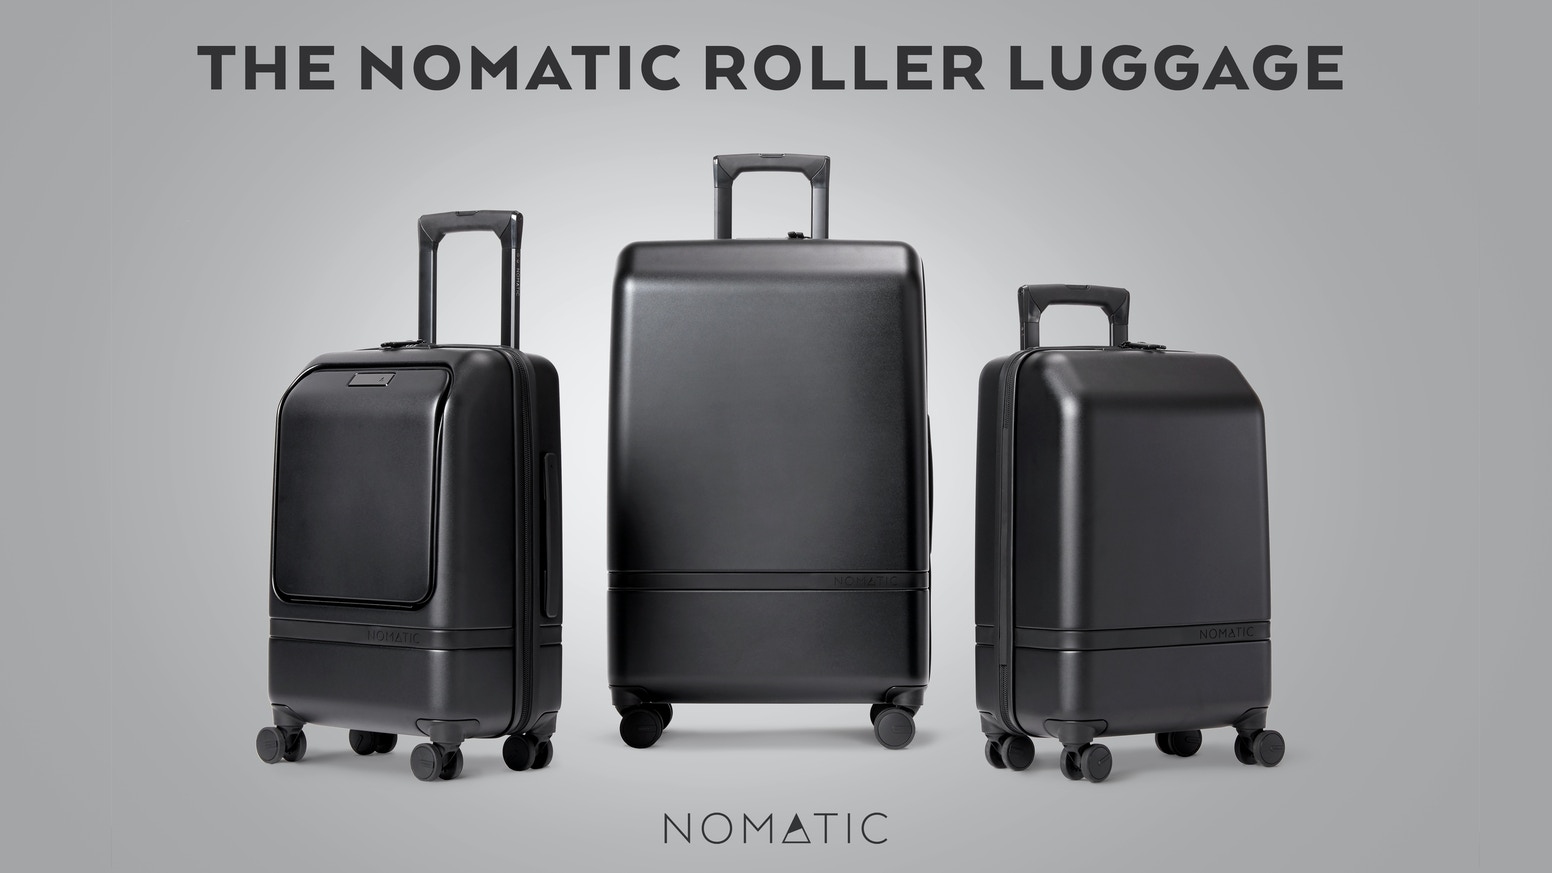 Extremely Durable Luggage That Makes Packing Easy and Streamlines Your Travels.